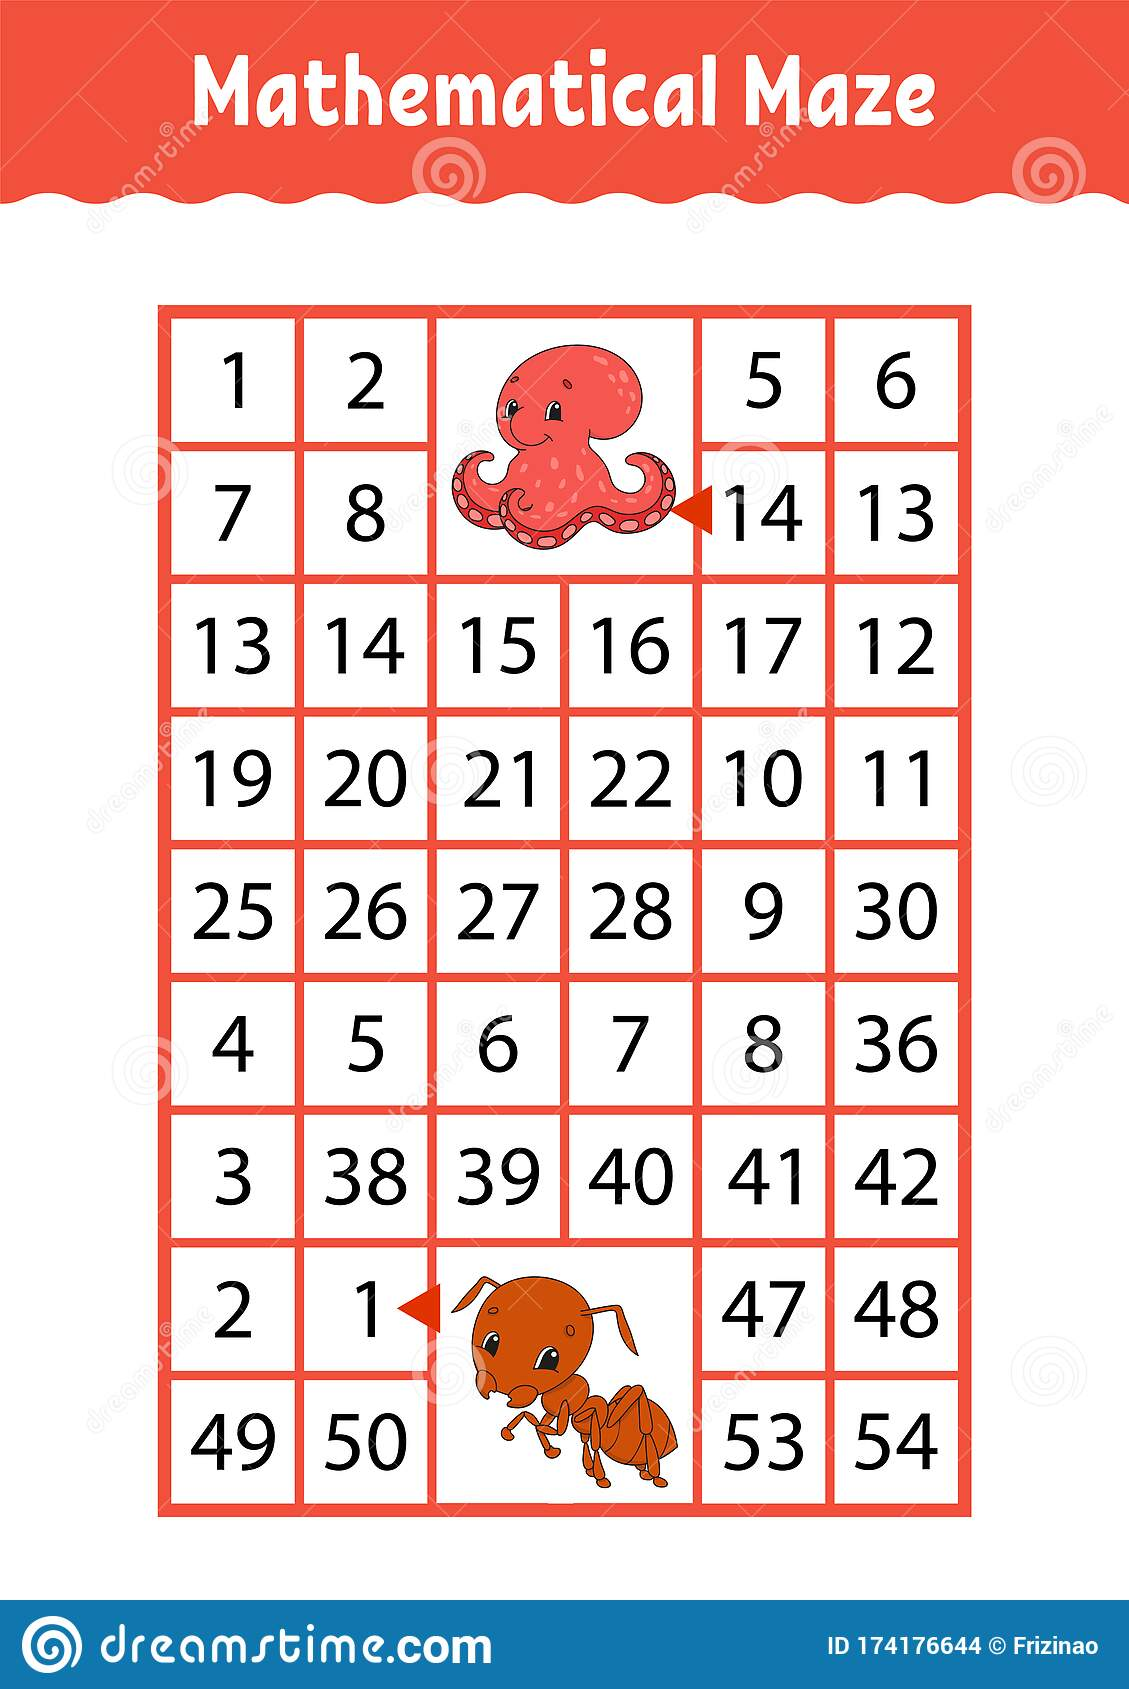 Mathematical Rectangle Maze Octopus And Ant Game For